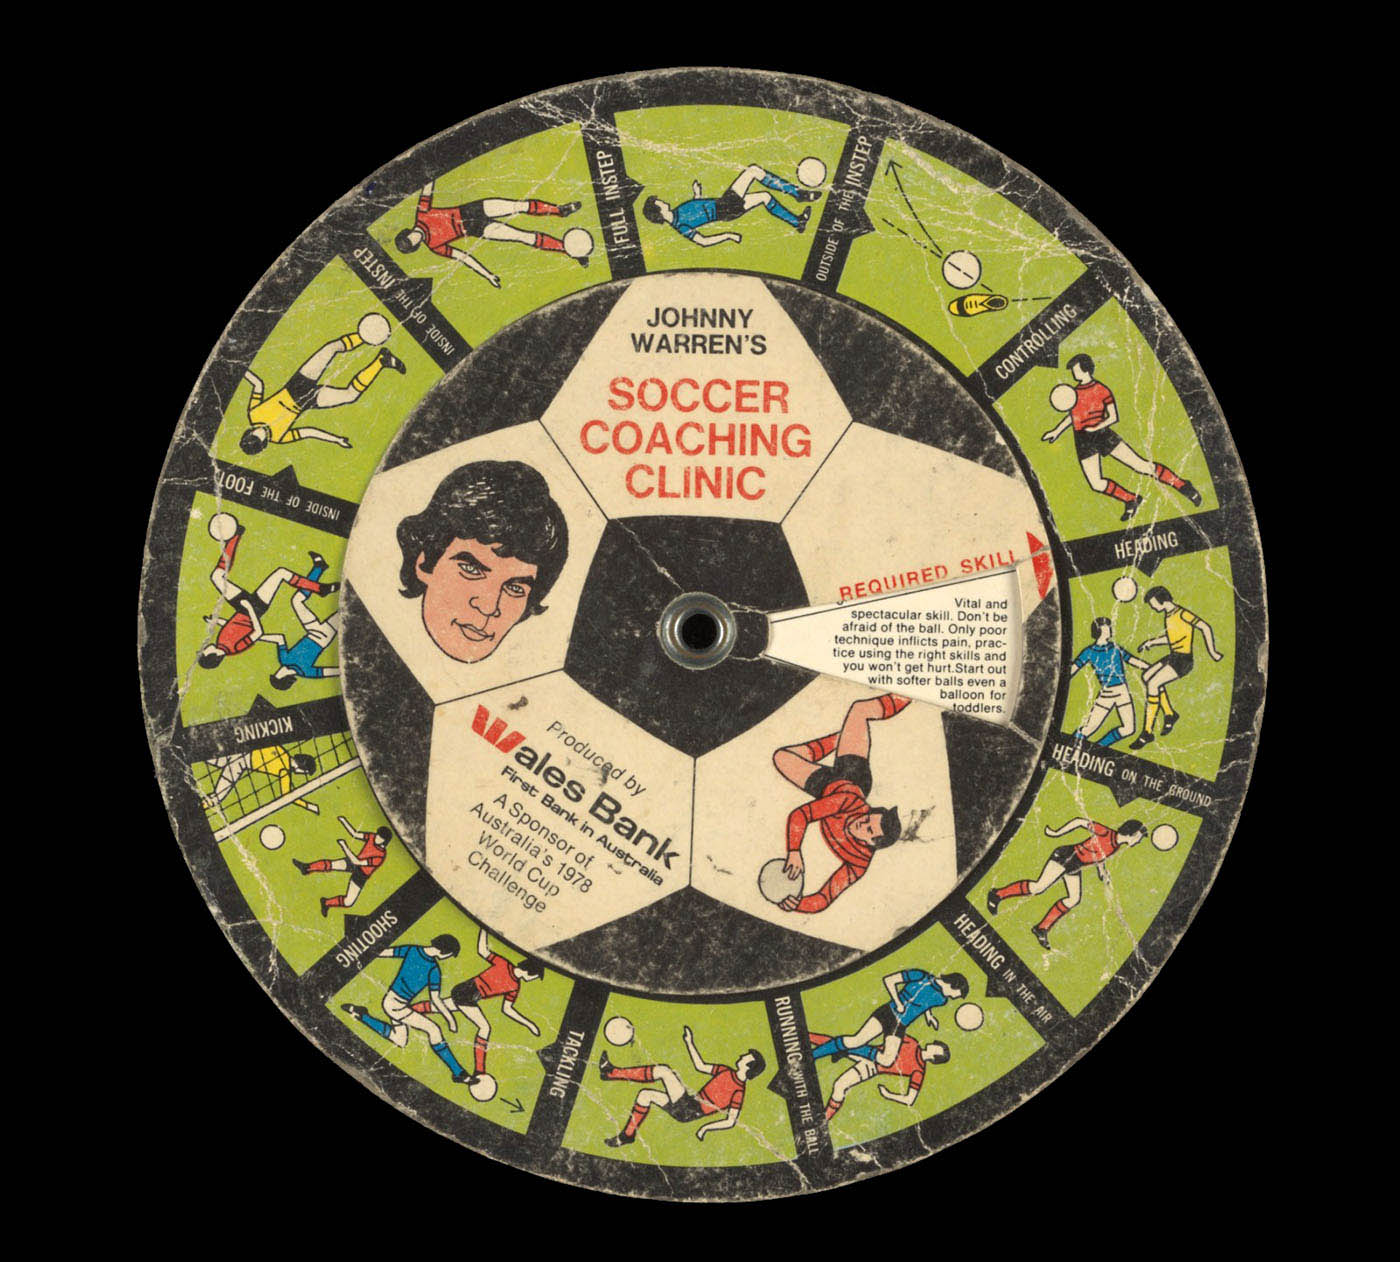 A colour printed cardboard disc with illustrations of football players in different positions, and accompanying descriptive text. There is an illustrated portrait of John Warren at the centre with text 'JOHNNY / WARREN'S SOCCER / COACHING / CLINIC / Produced by / Wales Bank / First Bank in Australia / A Sponsor of / Australia's 1978 / World Cup / Challenge'. - click to view larger image